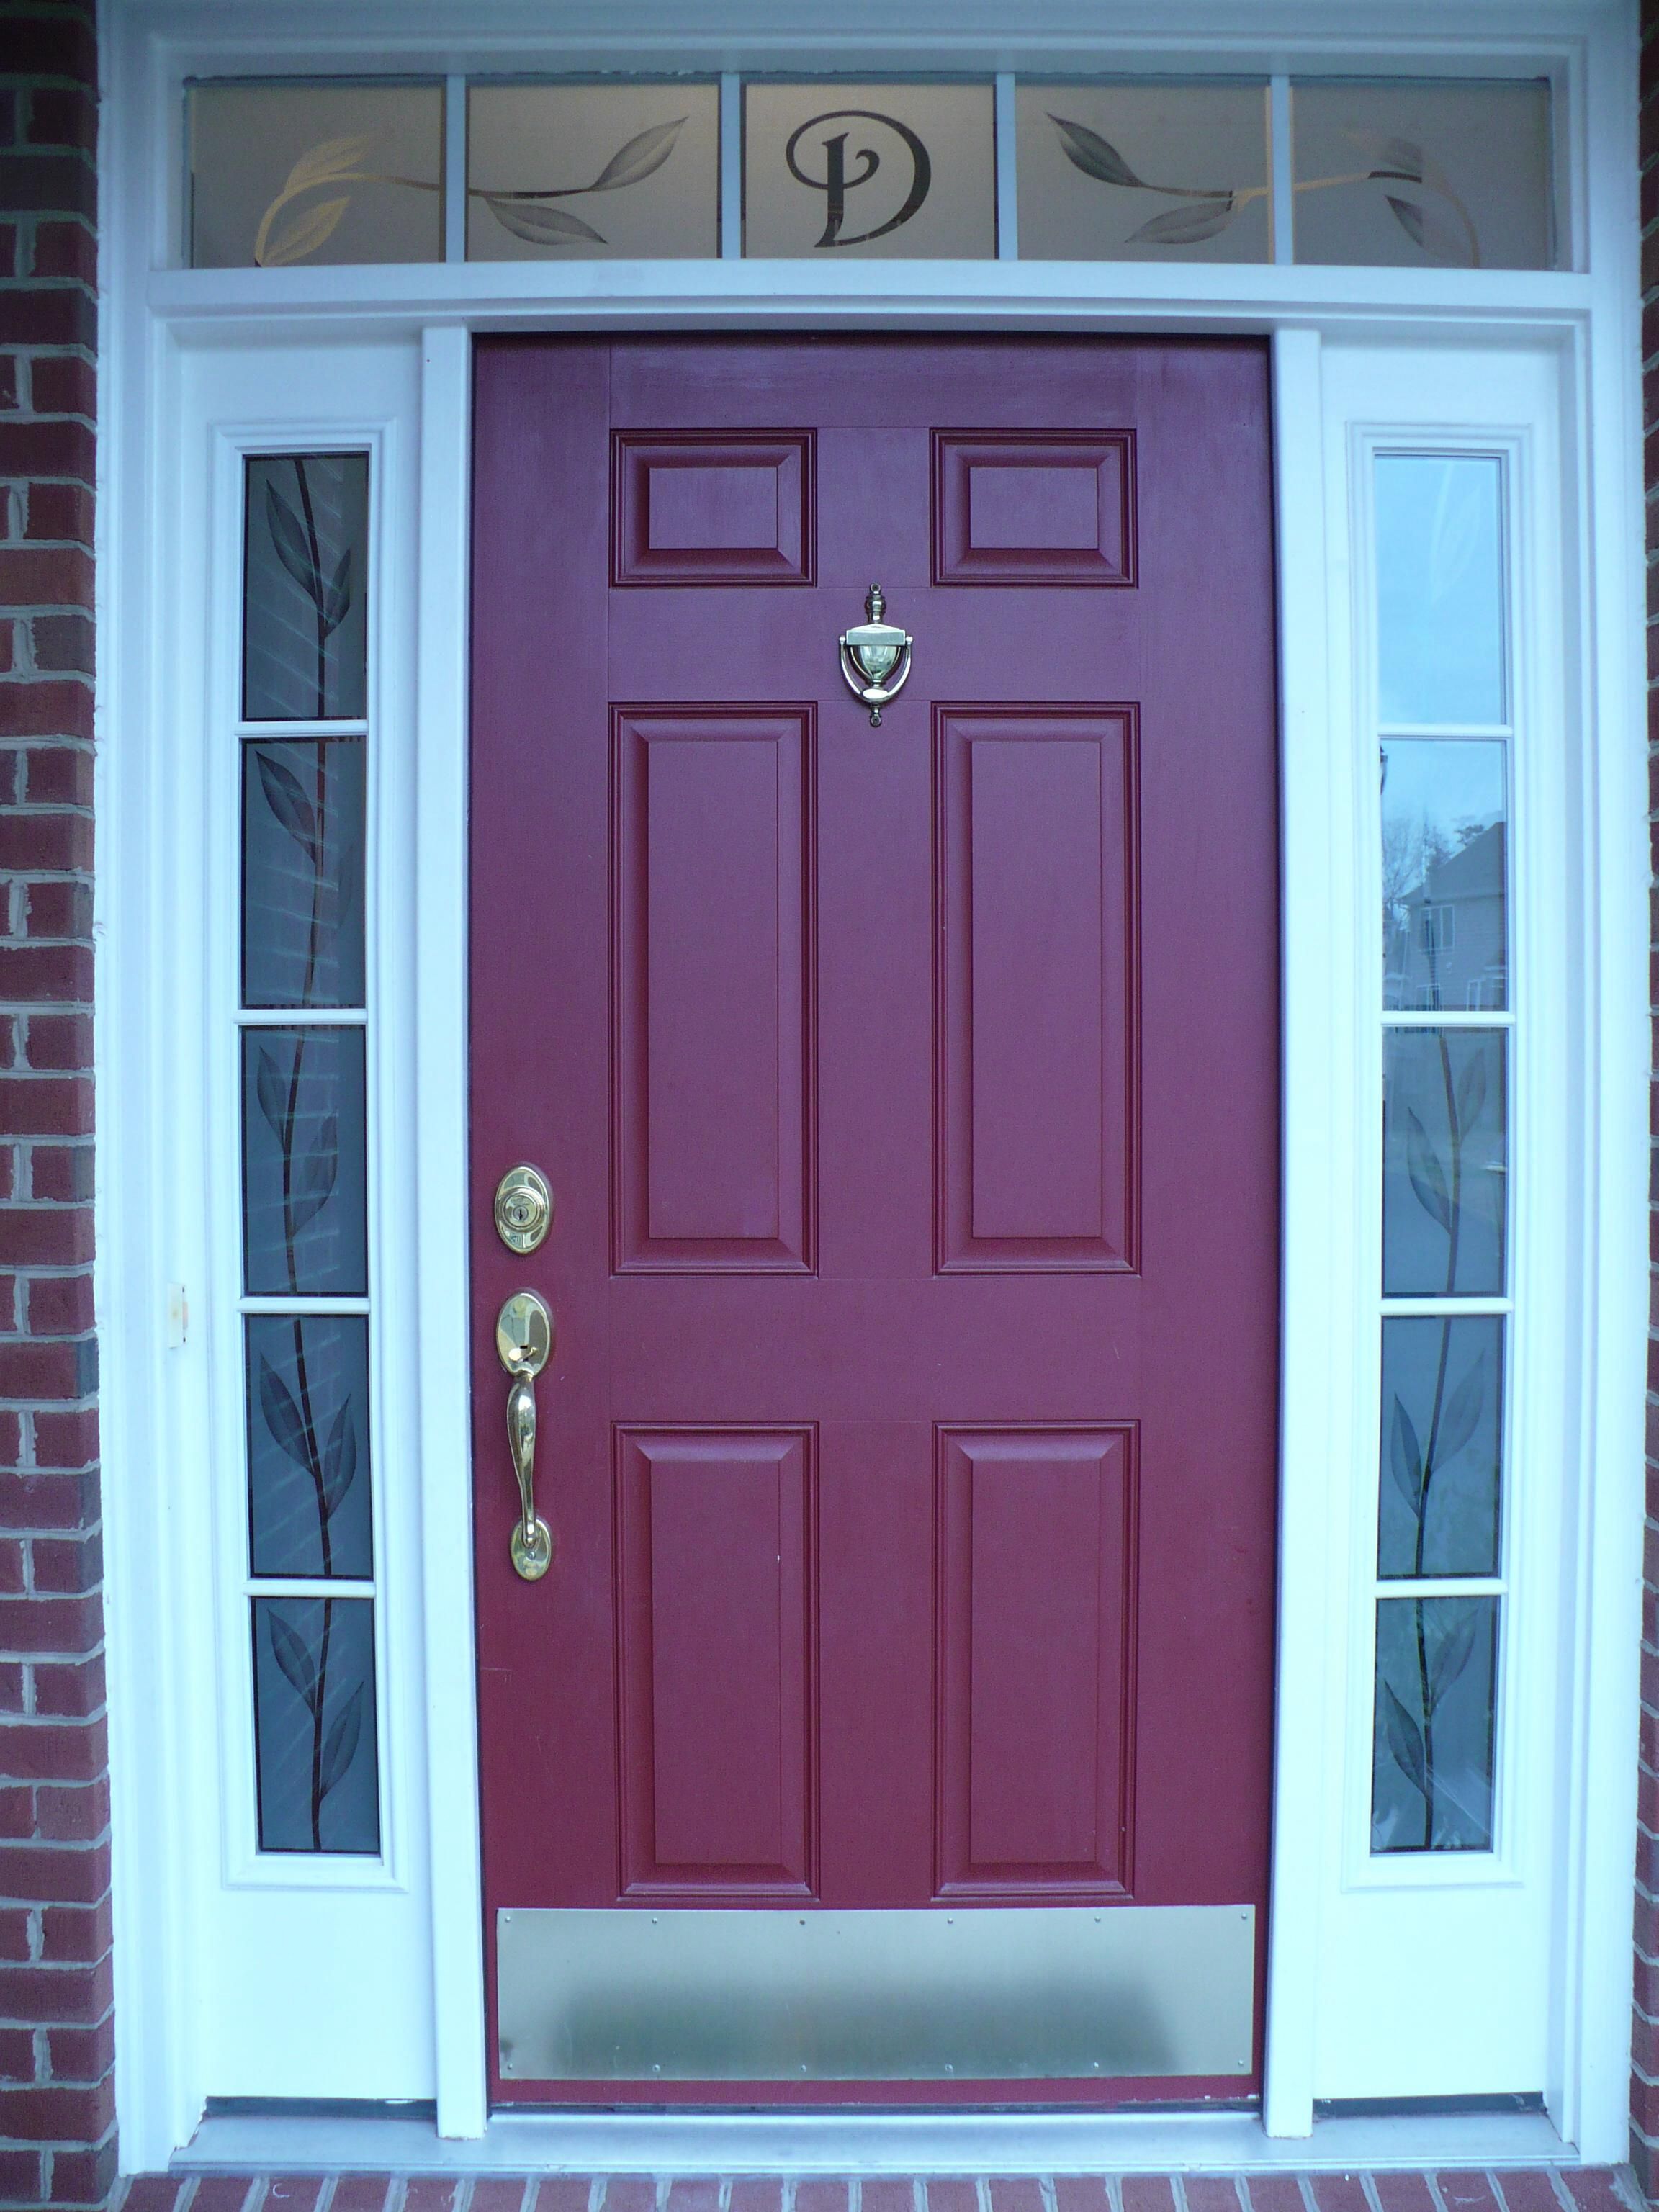 Home entrance door entrance doors with side panels for Entrance door with window